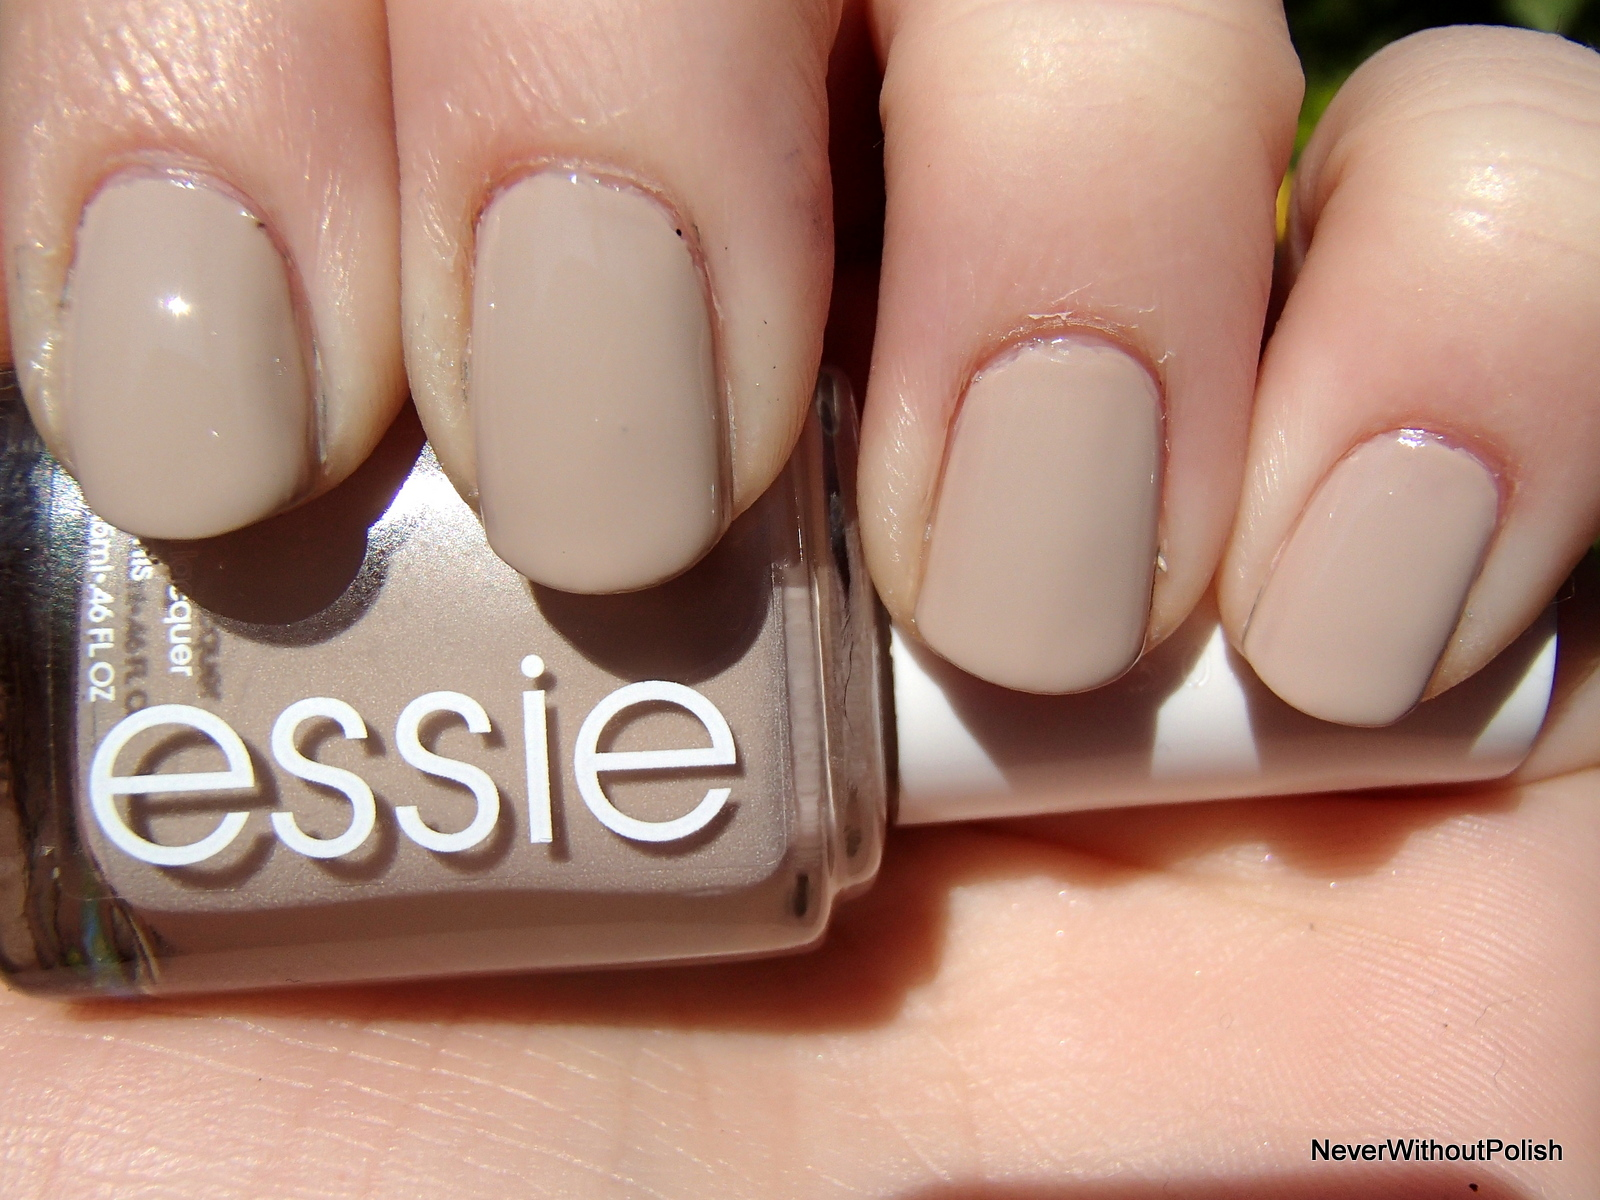 Never Without Polish: ...